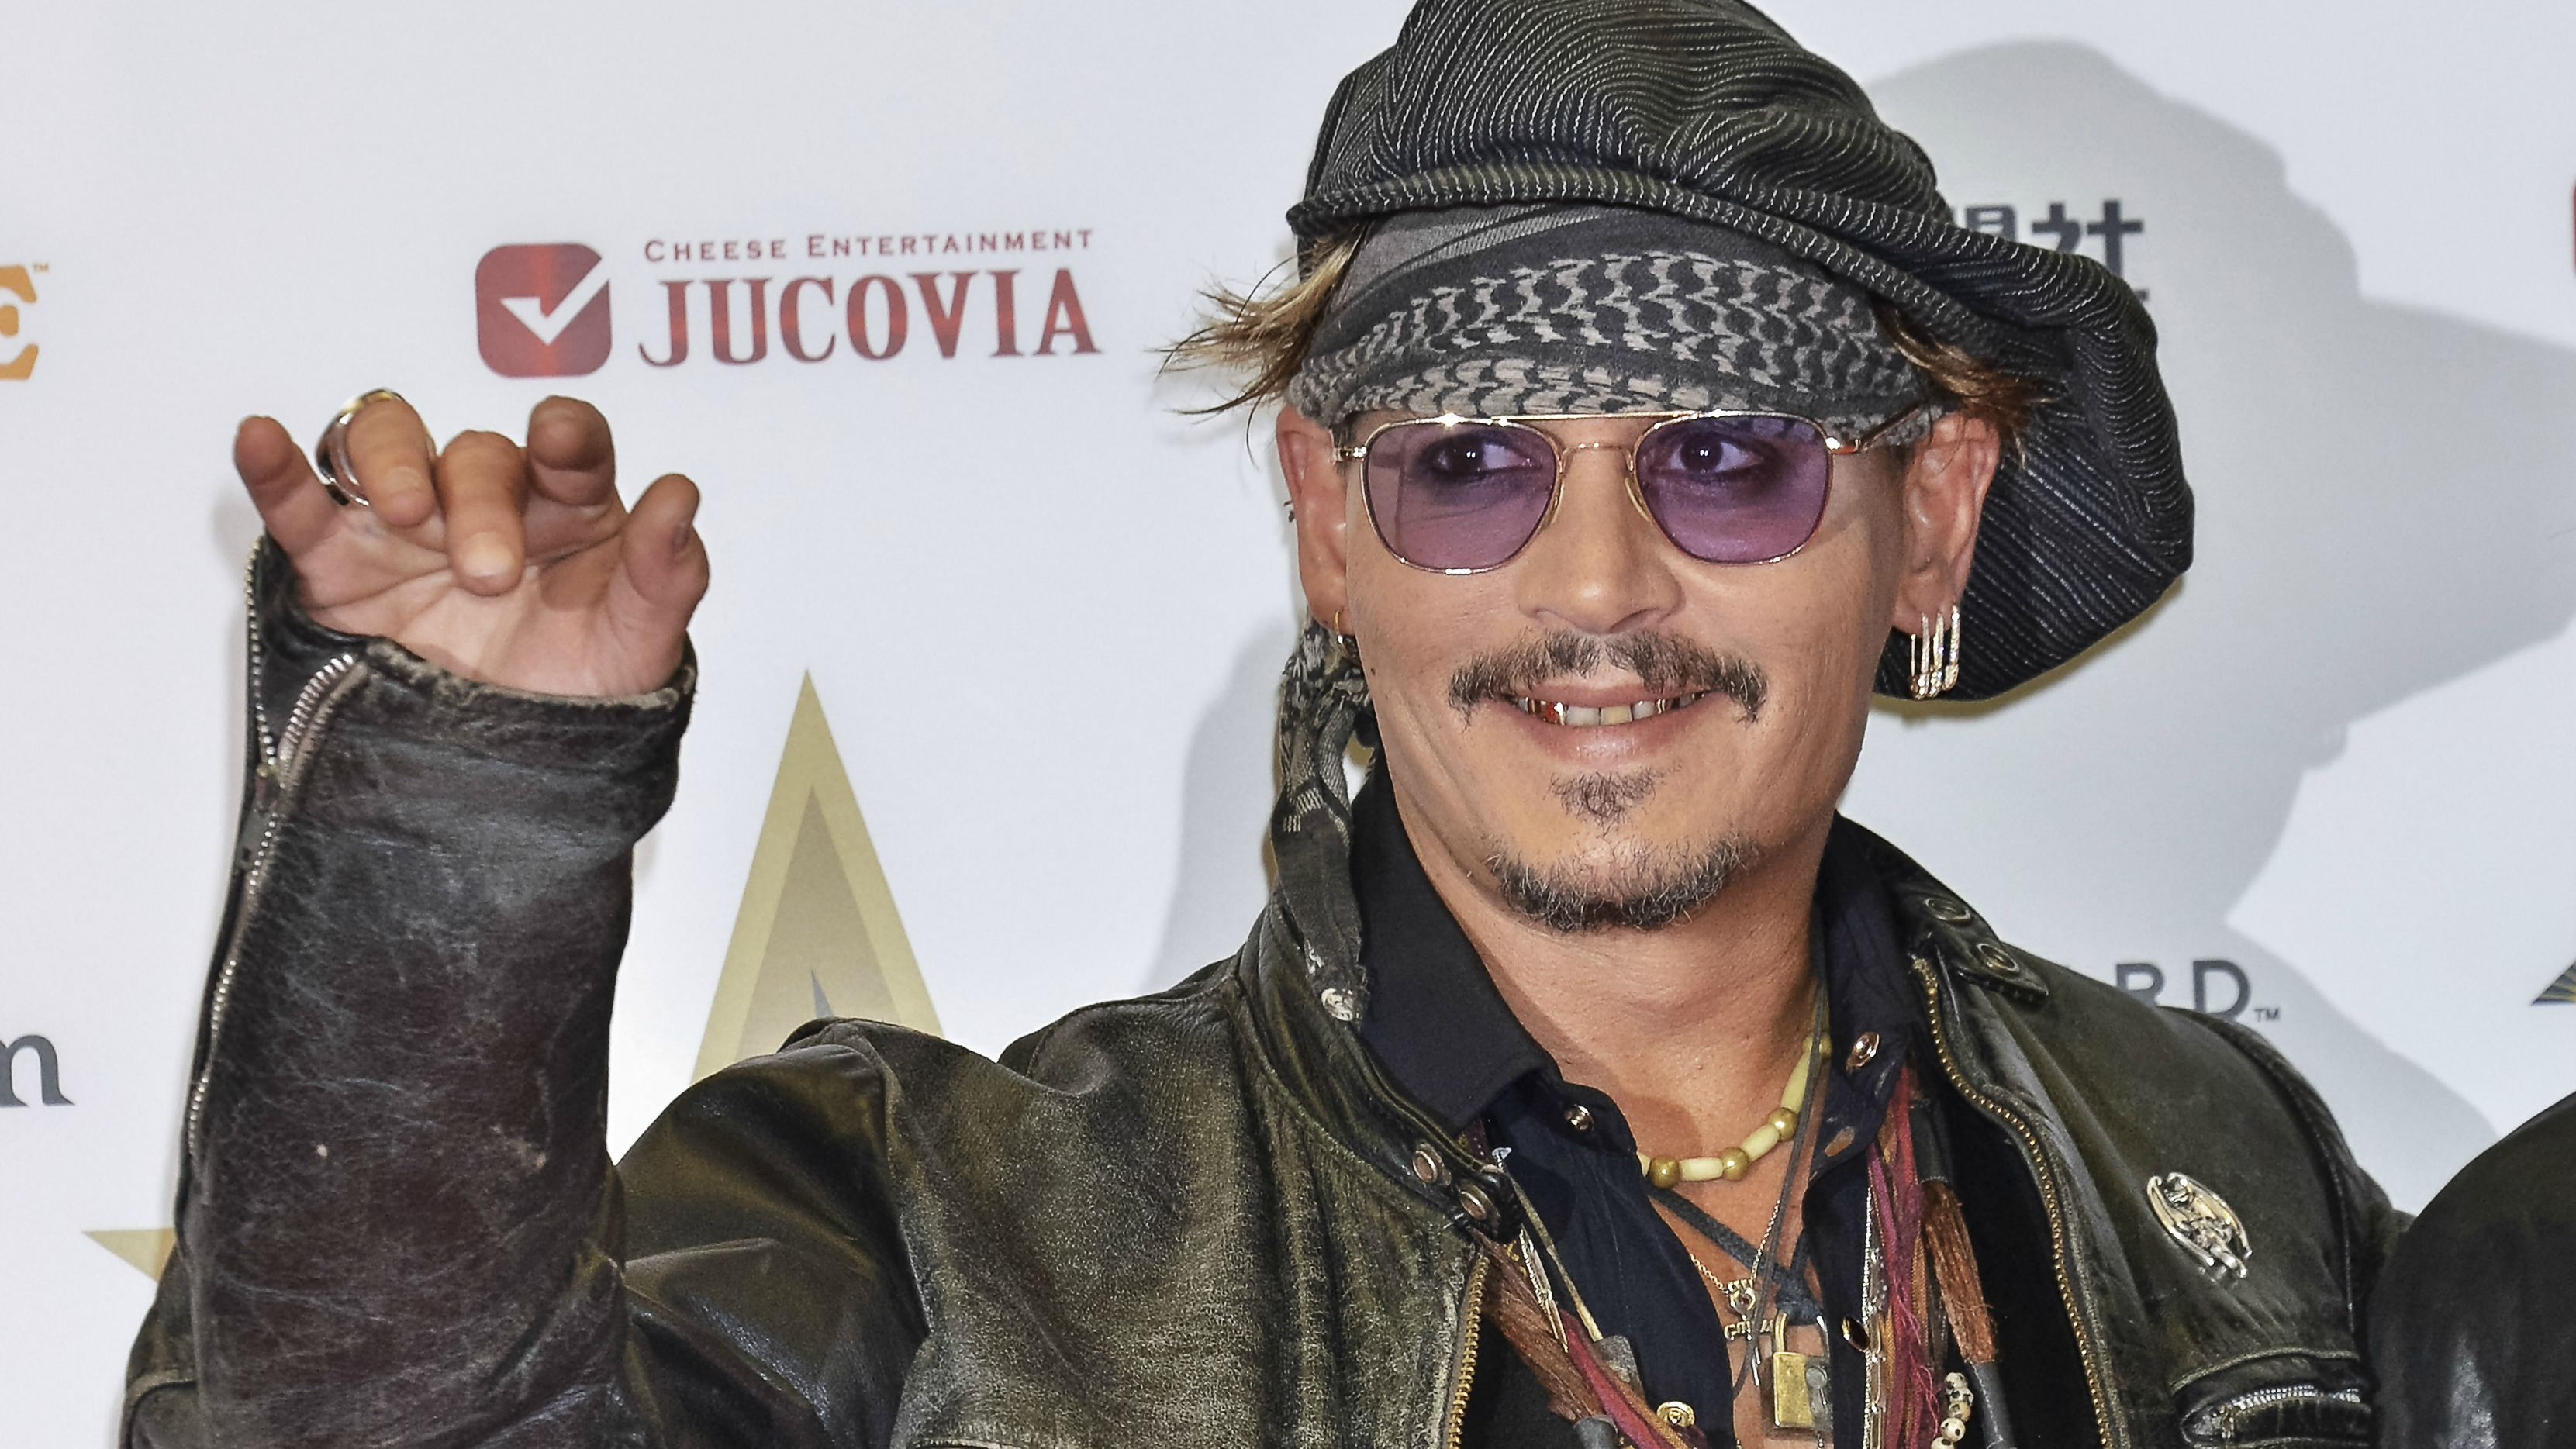 Johnny Depp Is Forbes' Most Overpaid Actor—Again